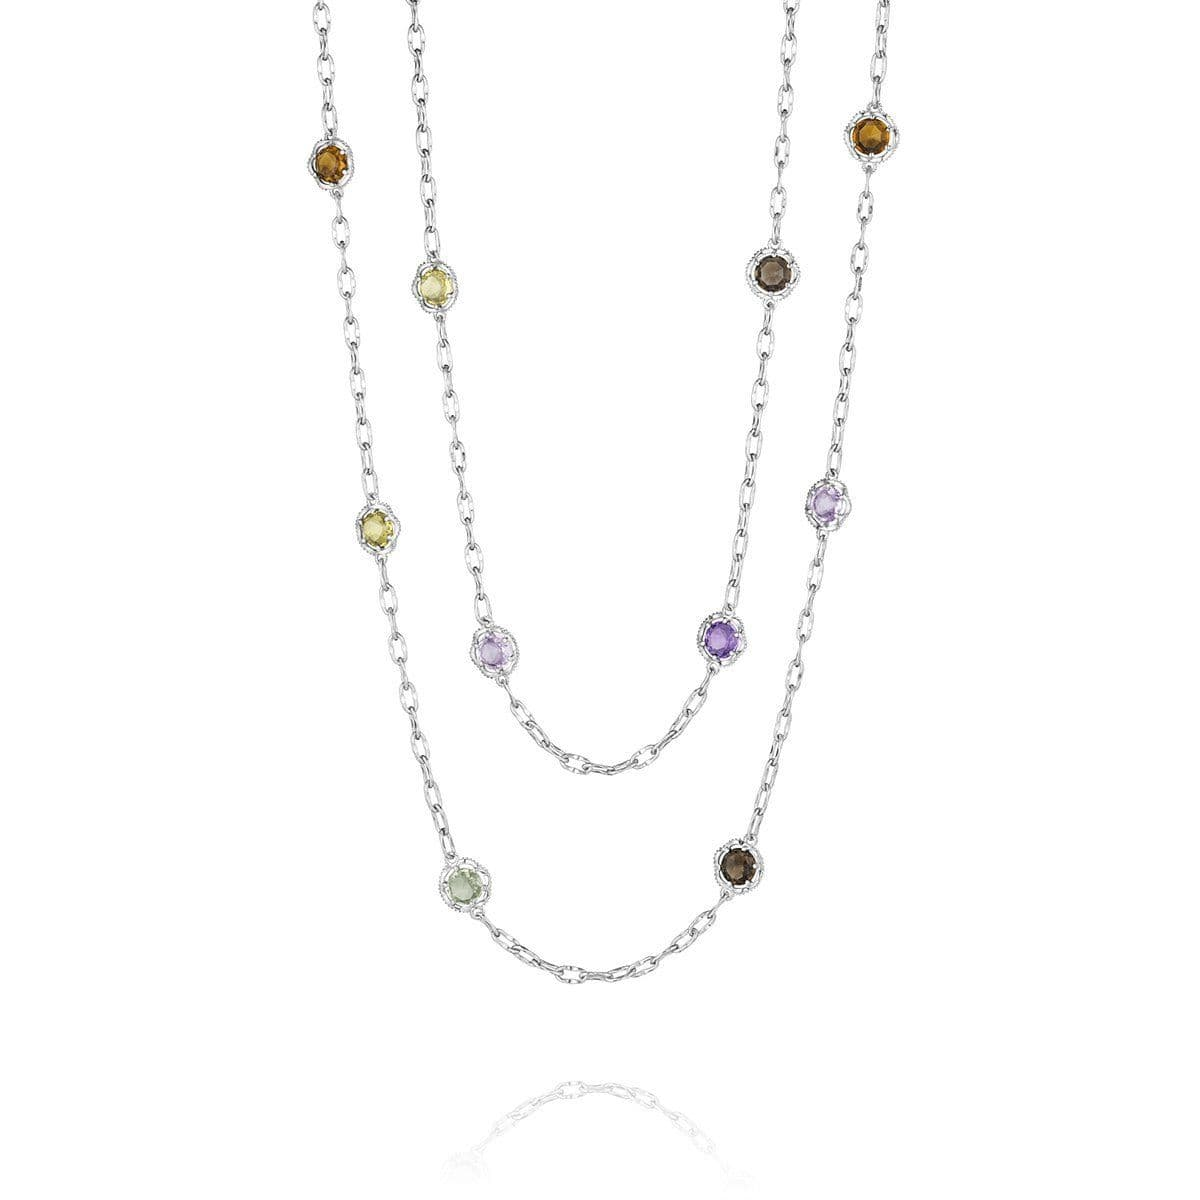 "Silver 38"" Colored Medley Necklace - SN108"